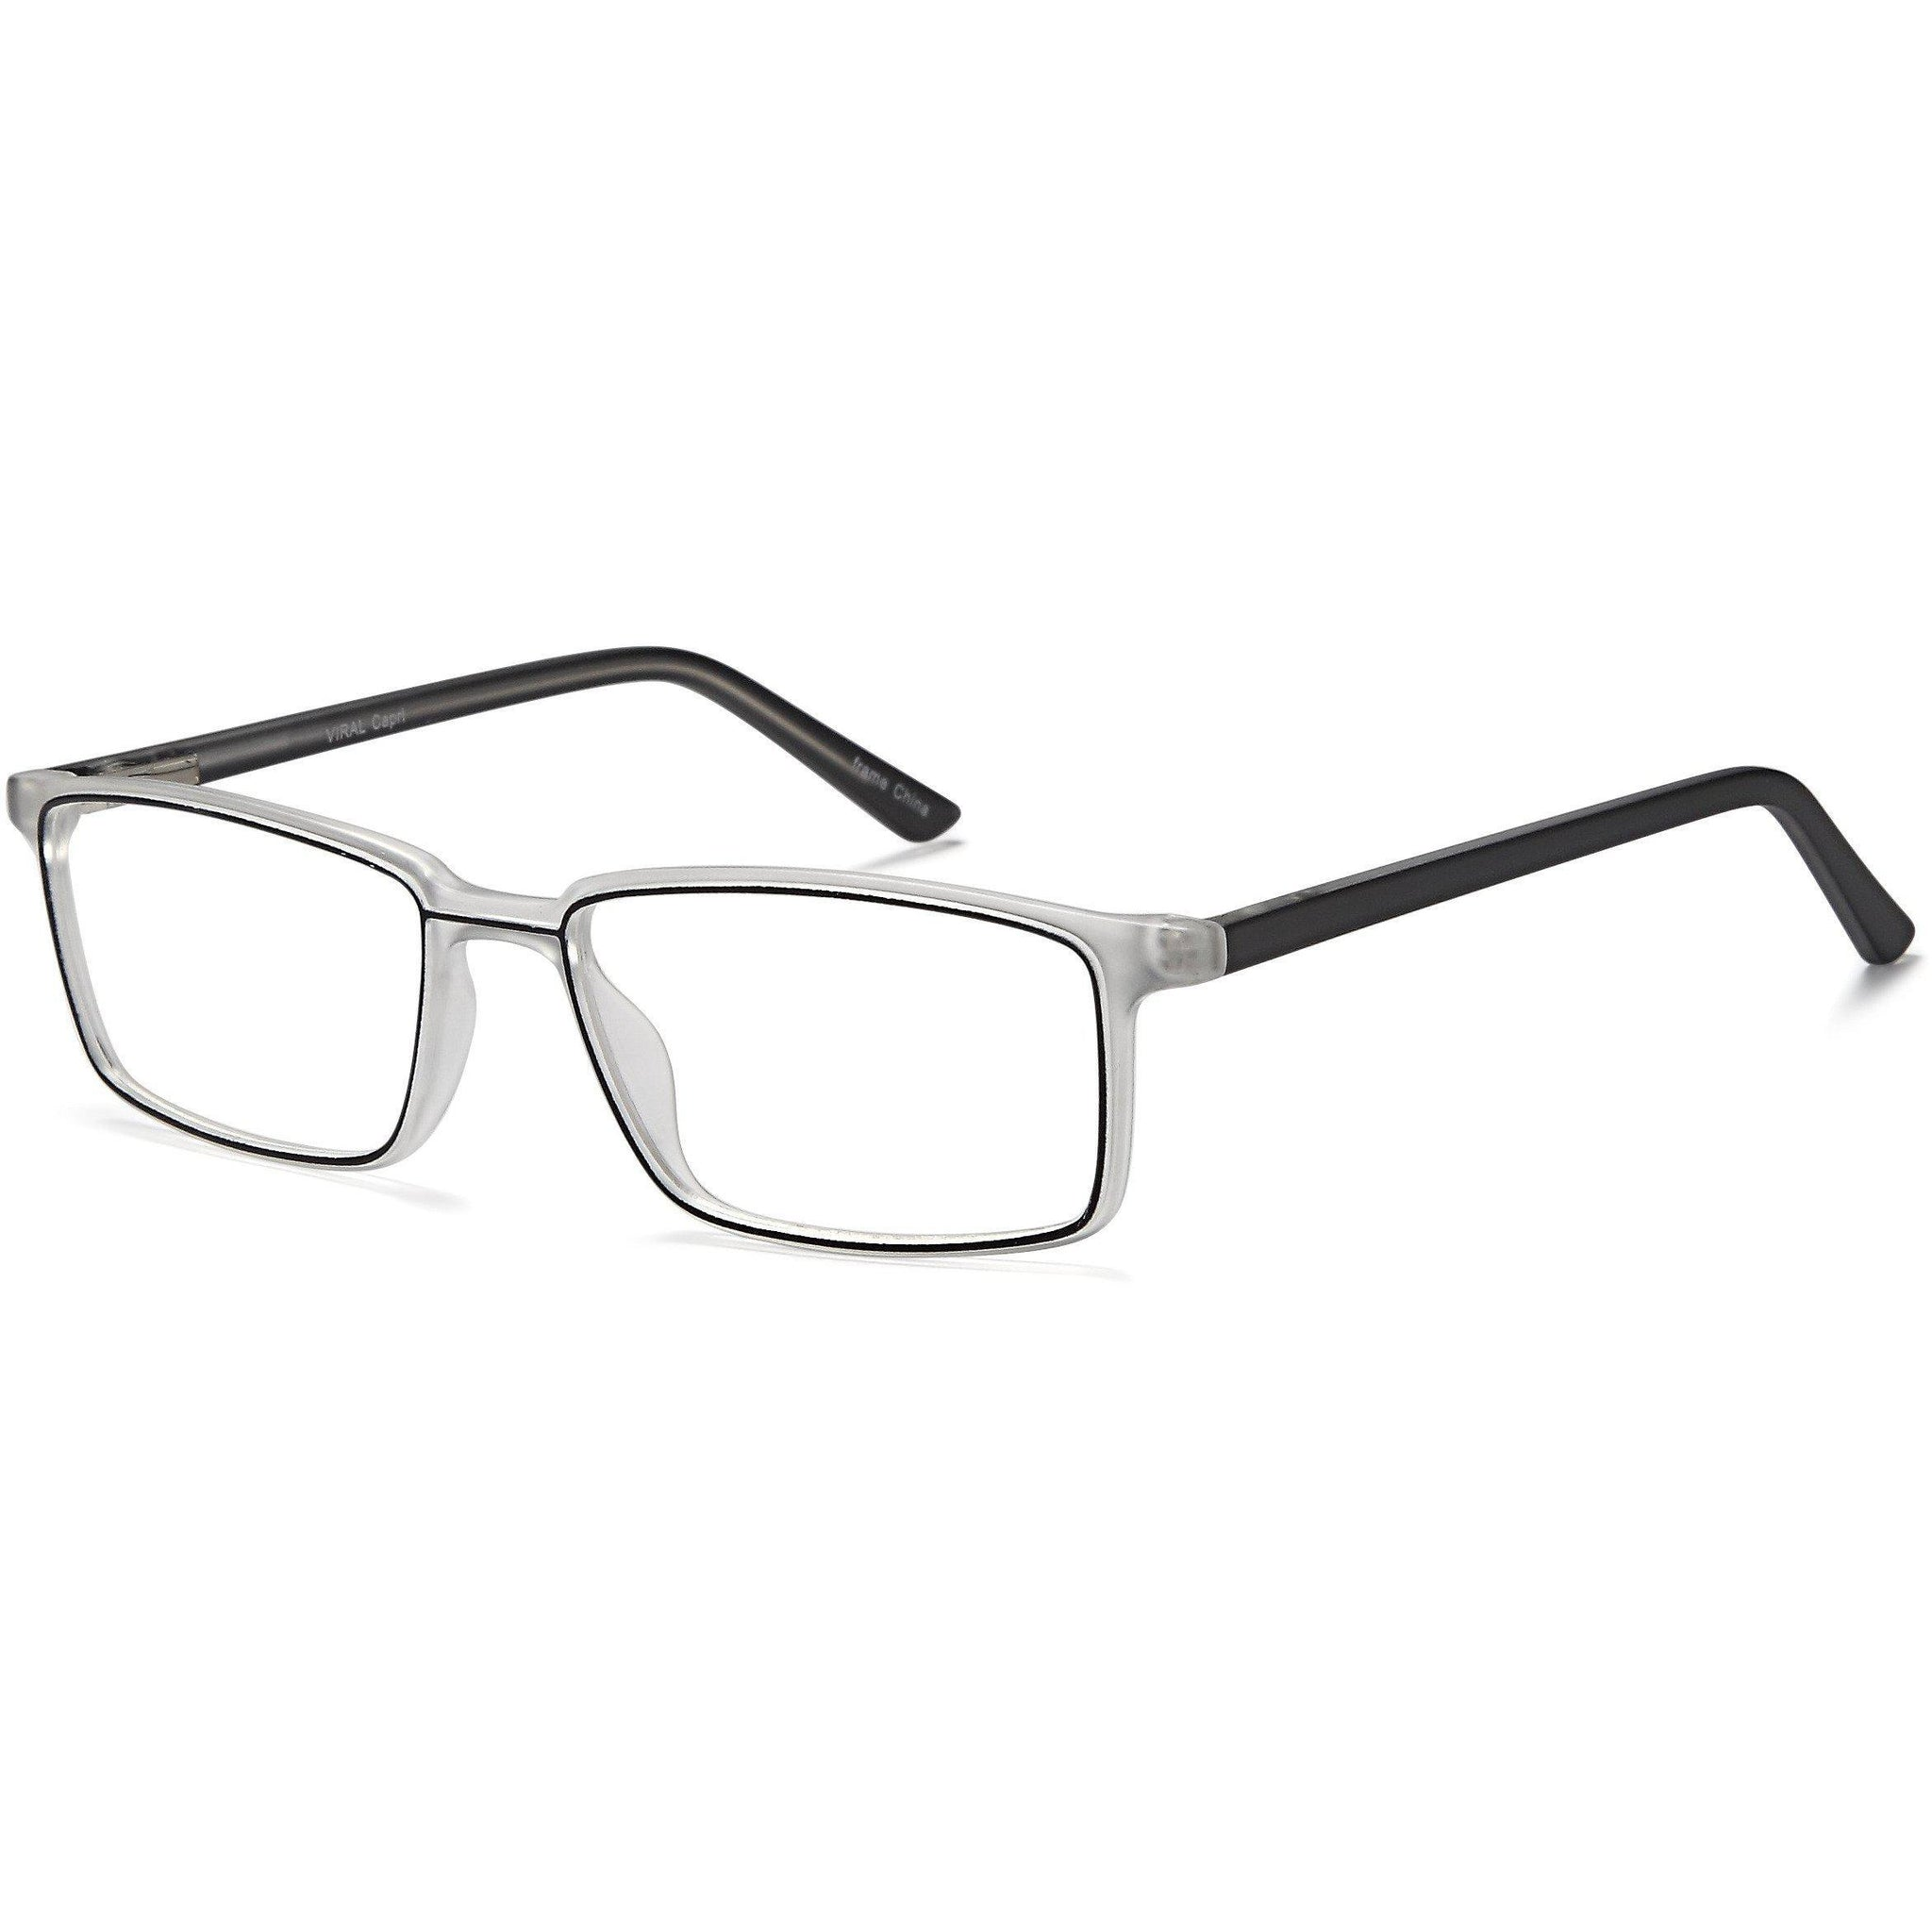 GEN Y Prescription Glasses VIRAL Eyeglasses Frame